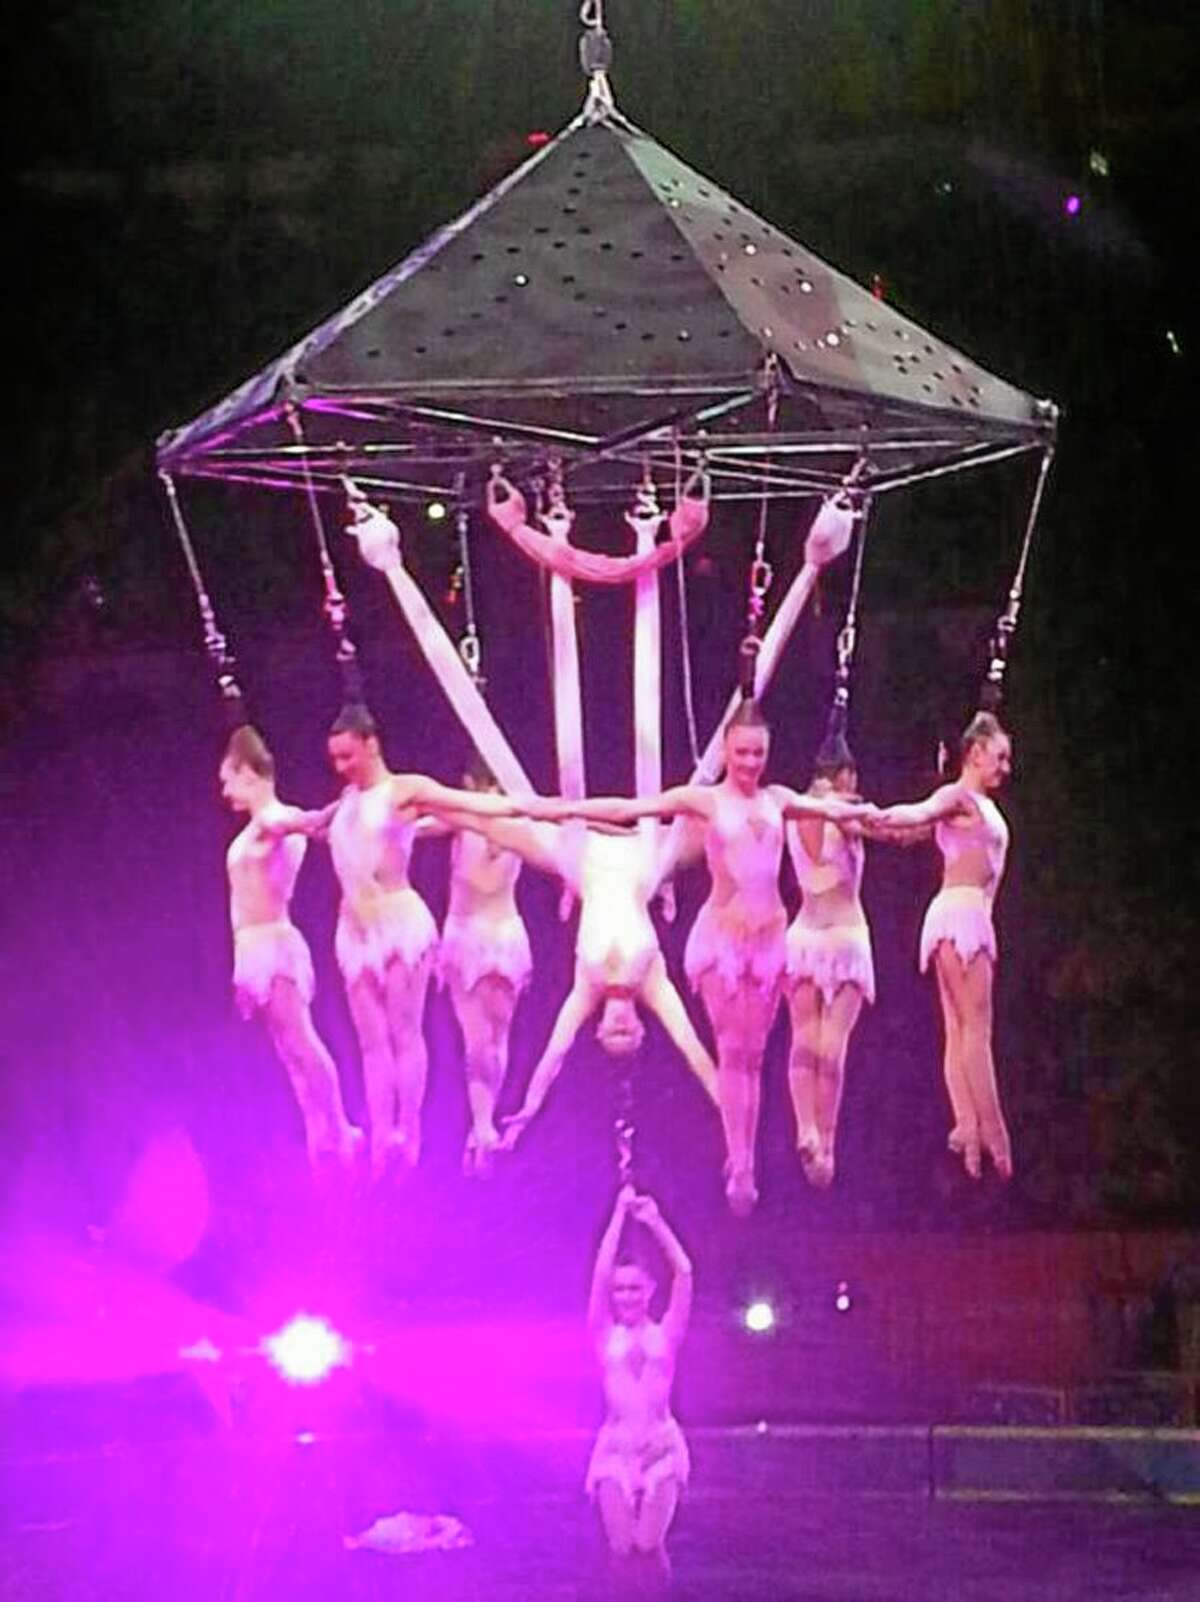 In this photo provided by Frank Caprio, performers hang during an aerial hair-hanging stunt at the Ringling Brothers and Barnum and Bailey Circus, Friday, May 2, 2014, in Providence, R.I. A platform collapsed during an aerial hair-hanging stunt at the 11 a.m. performance Sunday, May 4, sending eight acrobats plummeting to the ground. At least nine performers were seriously injured in the fall, including a dancer below, while an unknown number of others suffered minor injuries.